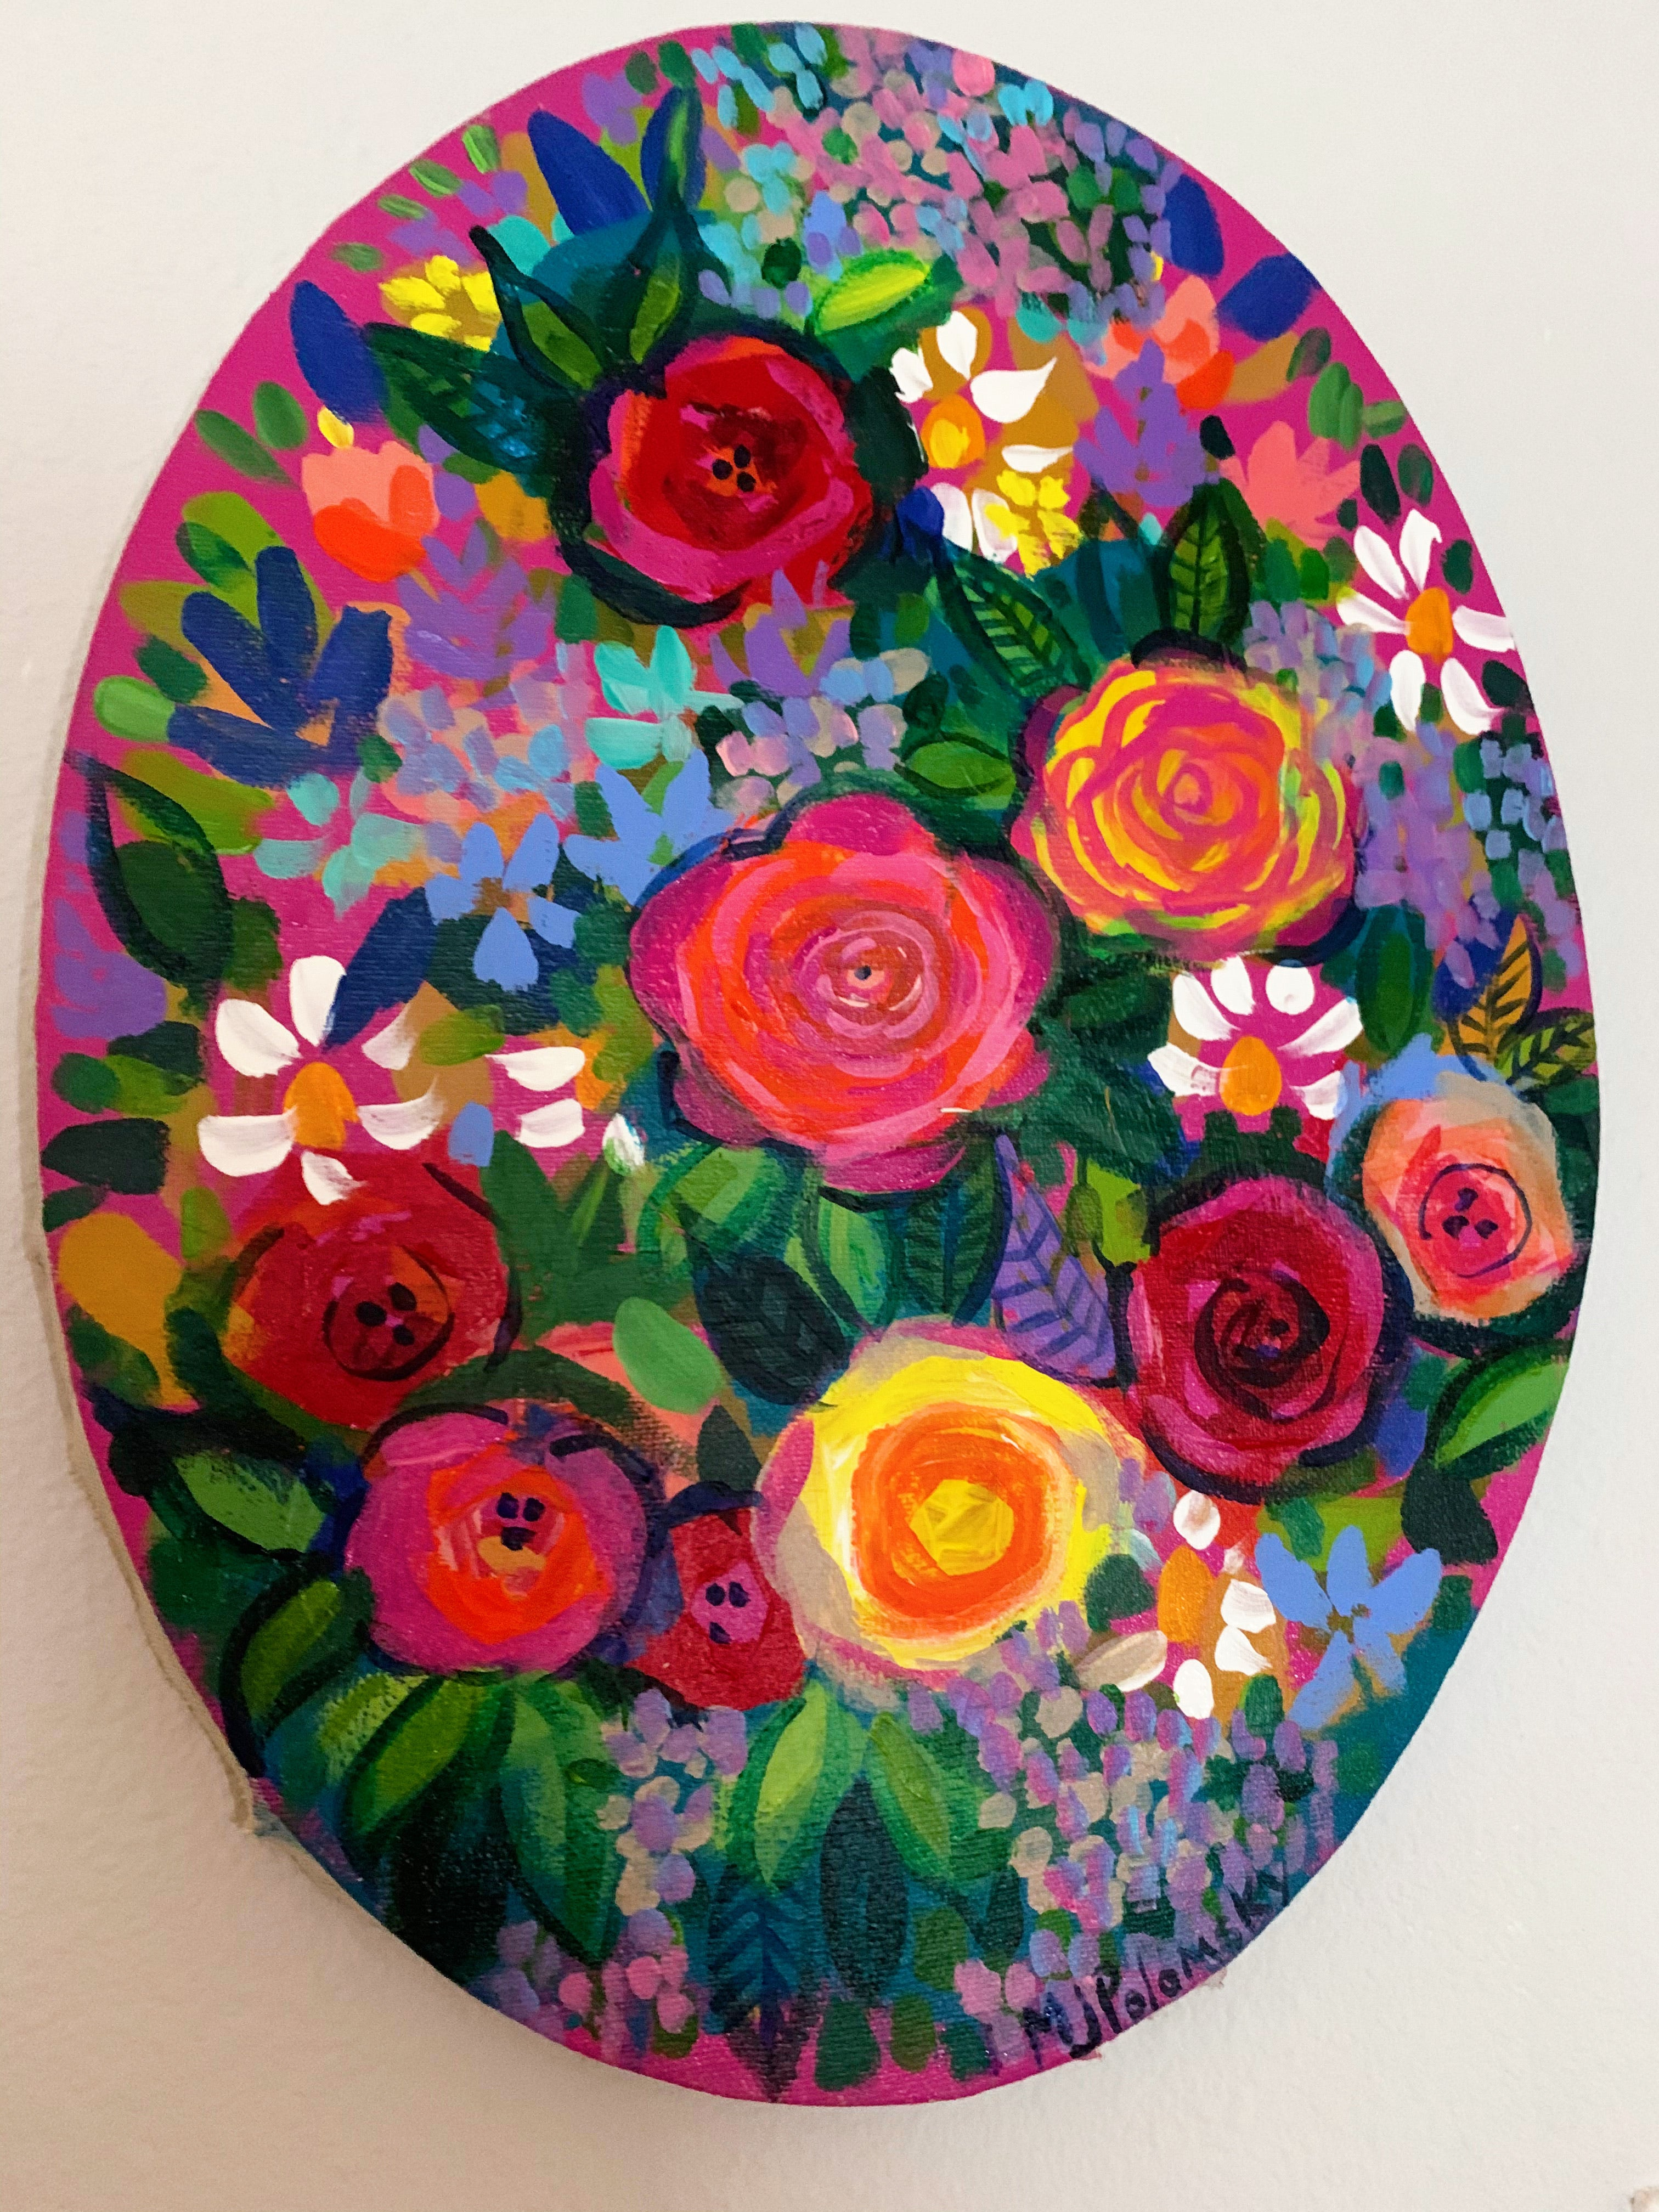 Oval Canvas Floral Painting with Vibrant Colors